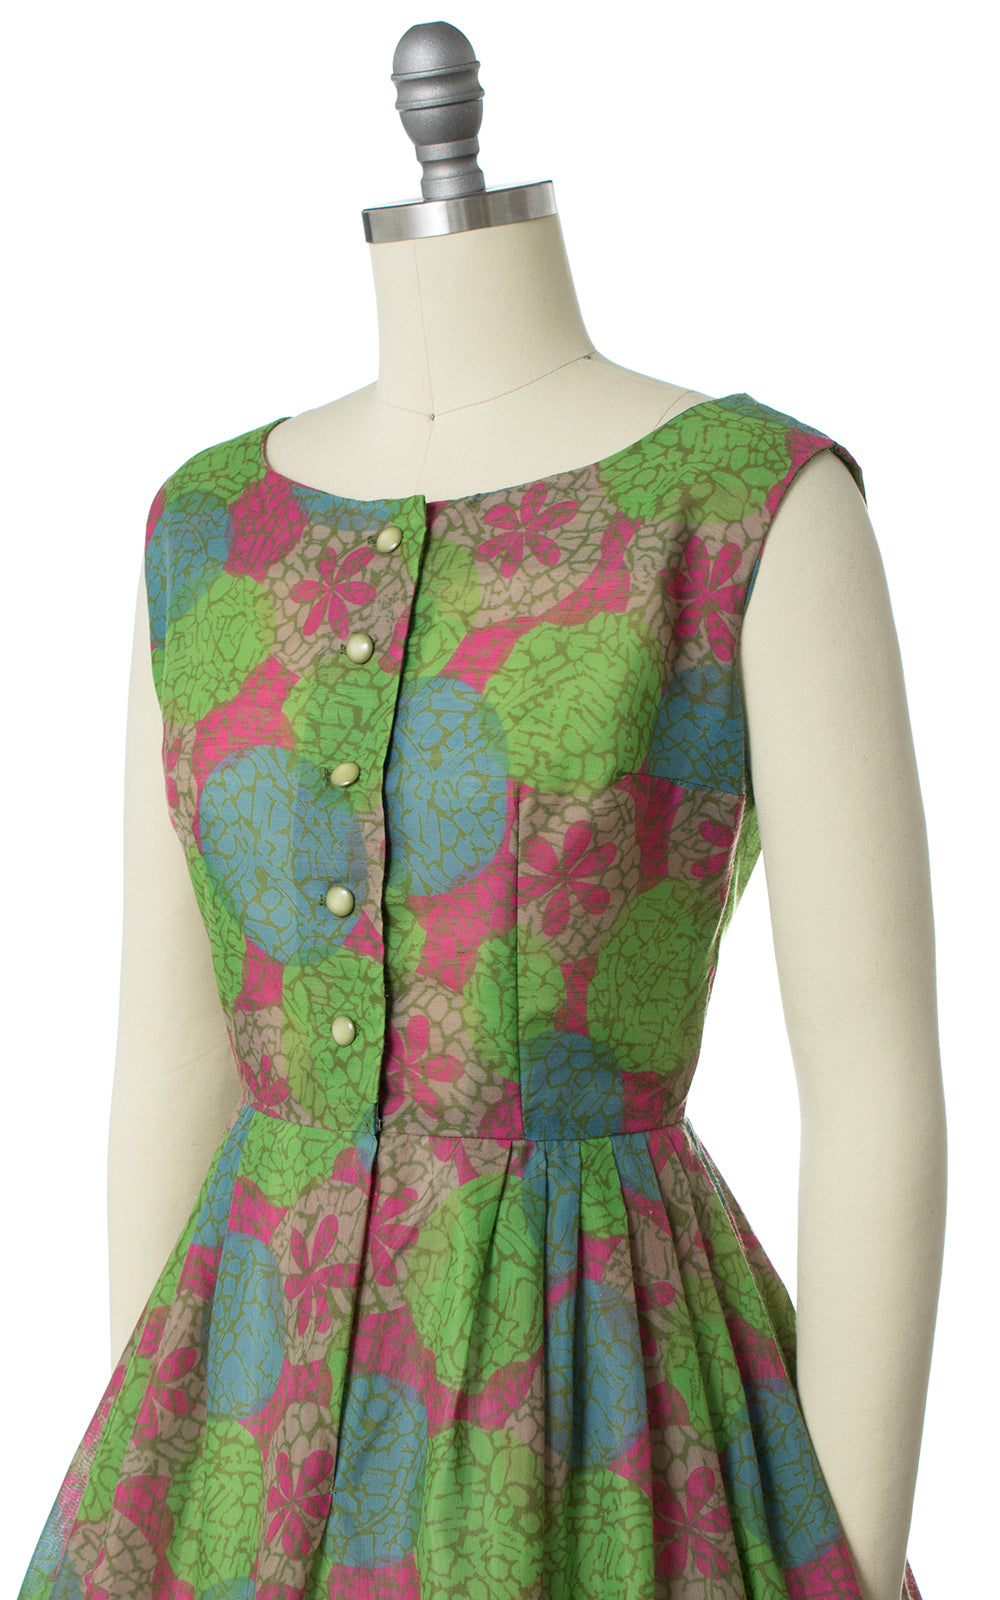 1960s Floral Polka Dot Shirtwaist Sundress